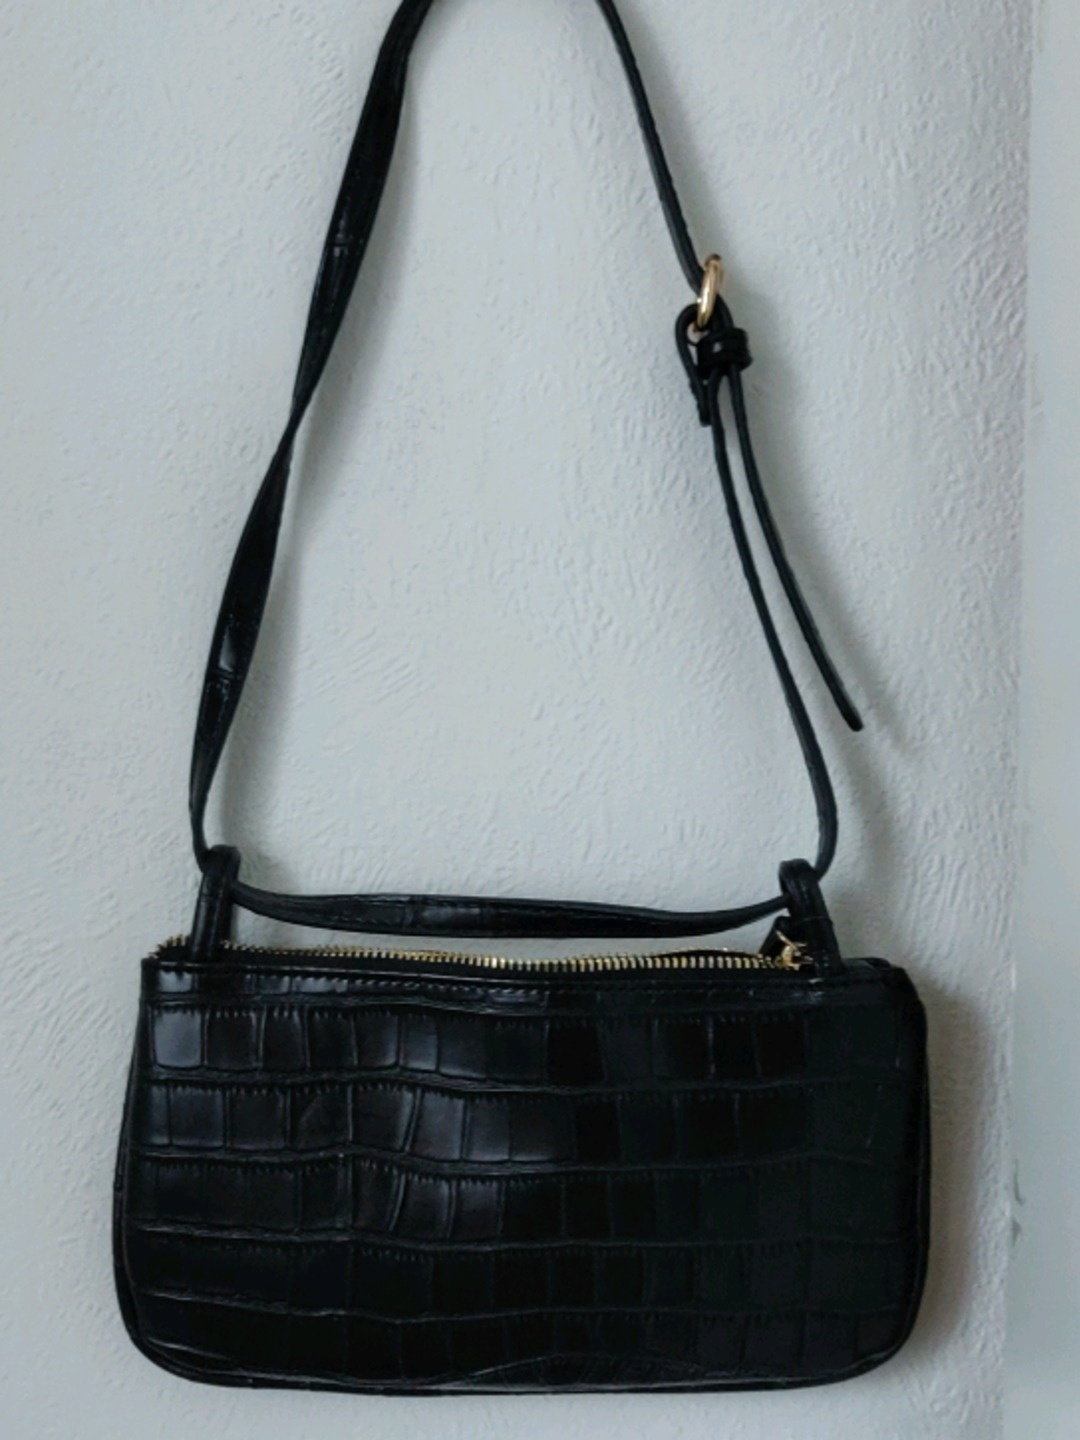 Women's bags & purses - GLASSONS photo 1